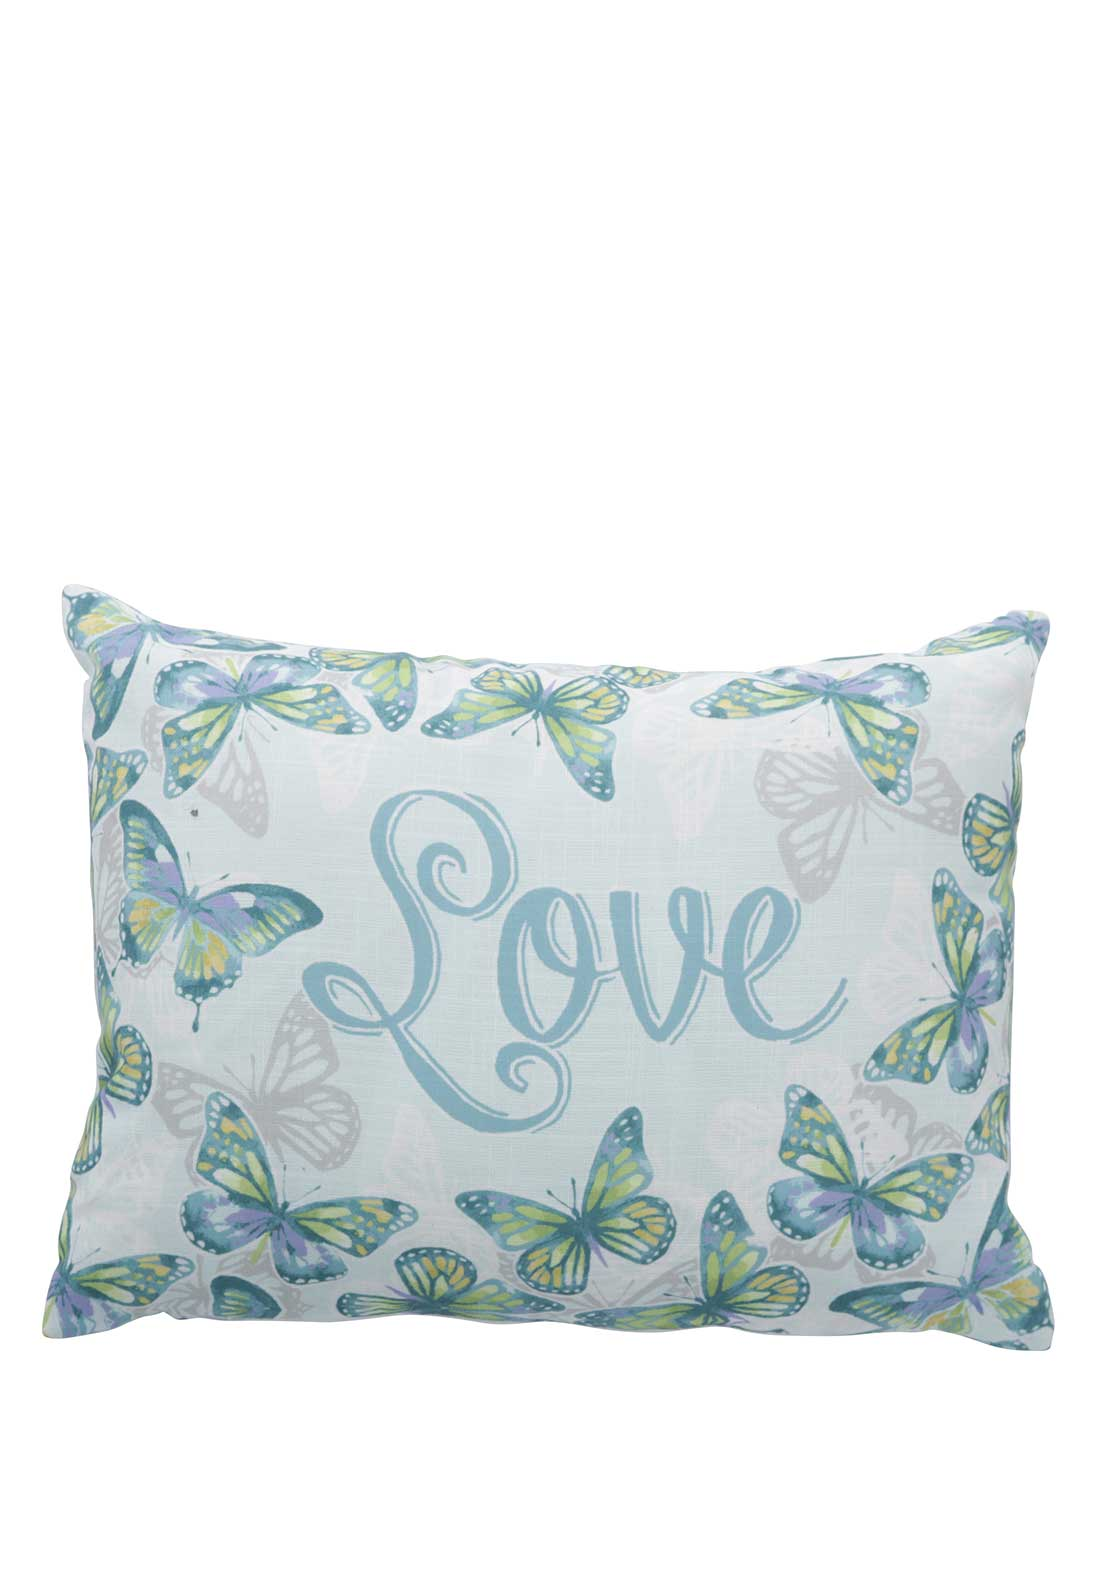 Appletree Lottie Cushion, Duck Egg